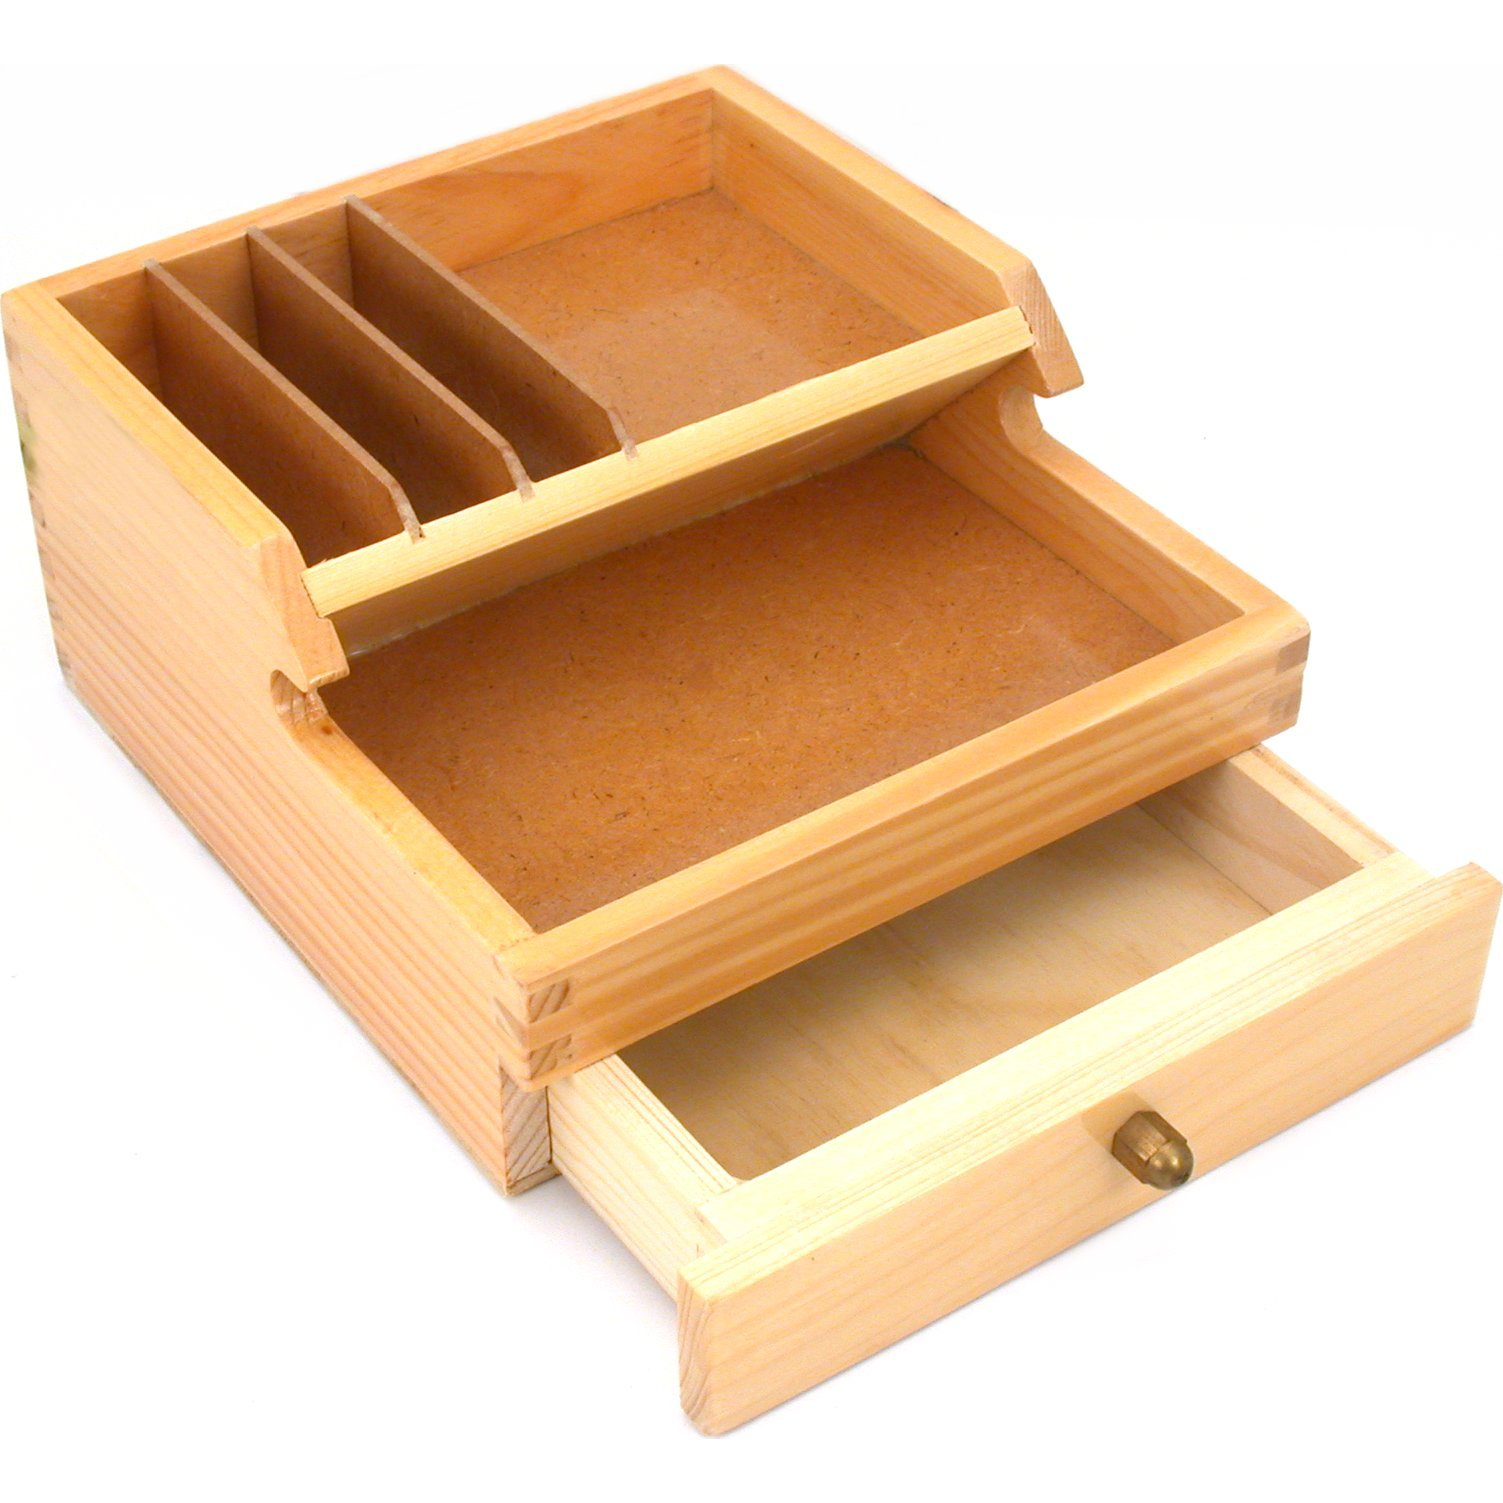 Jewelers Watchmakers Work Bench Tool Organizer Drawer